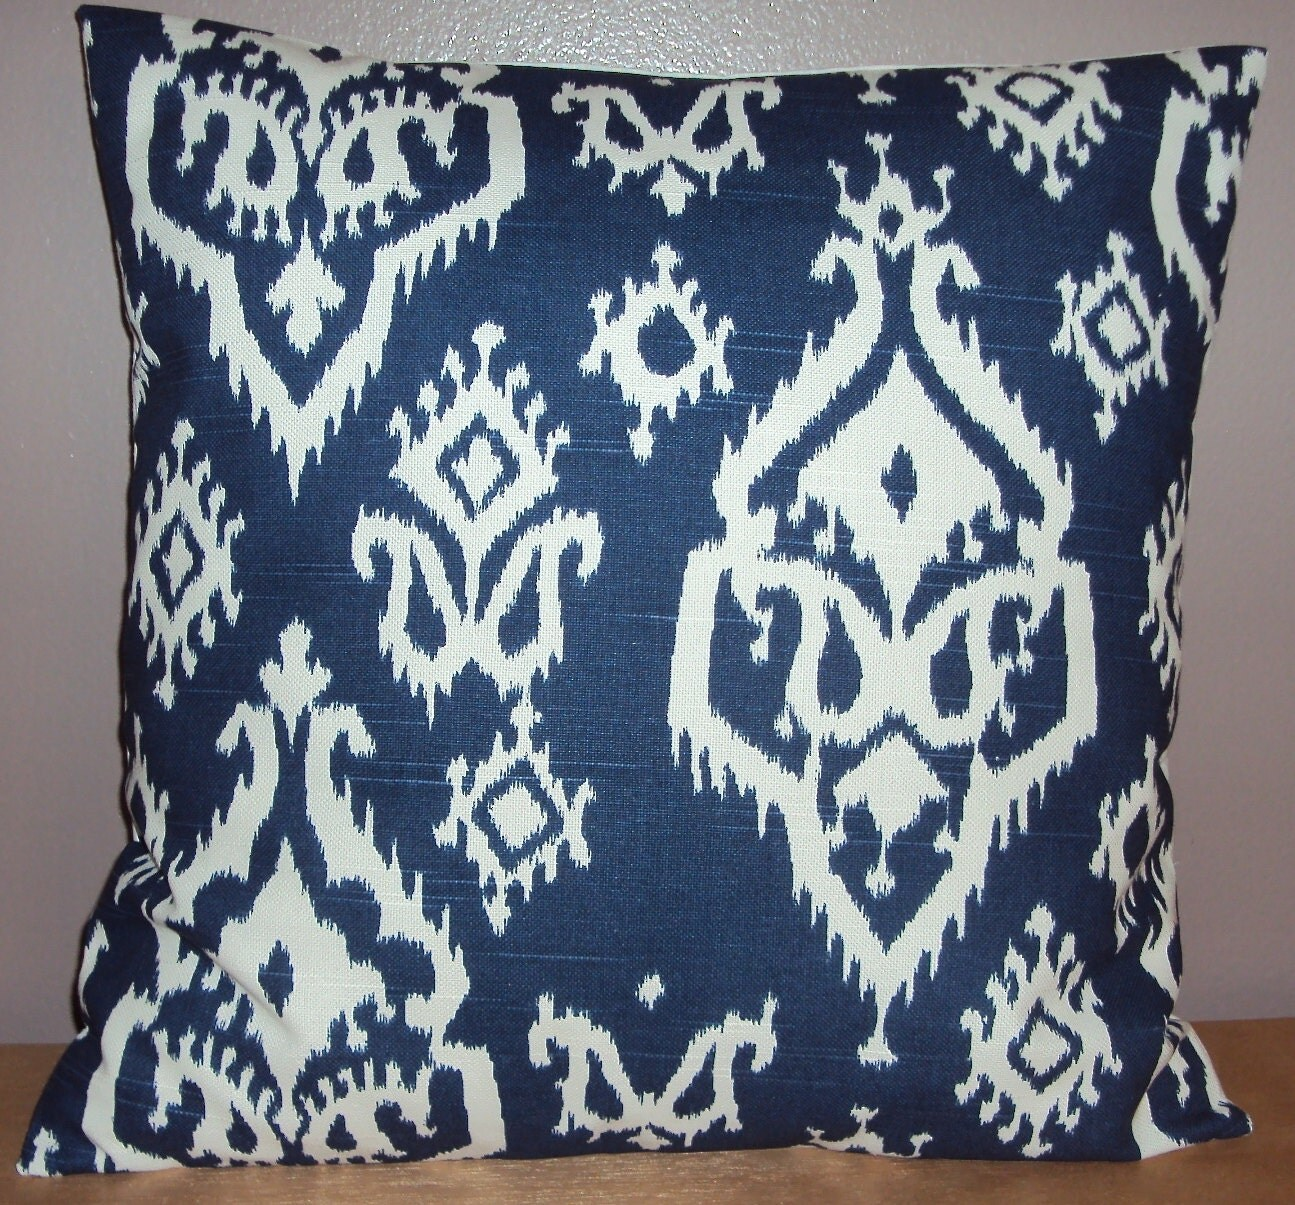 Navy Blue and White Paisley Ikat Decorative Pillow Cover